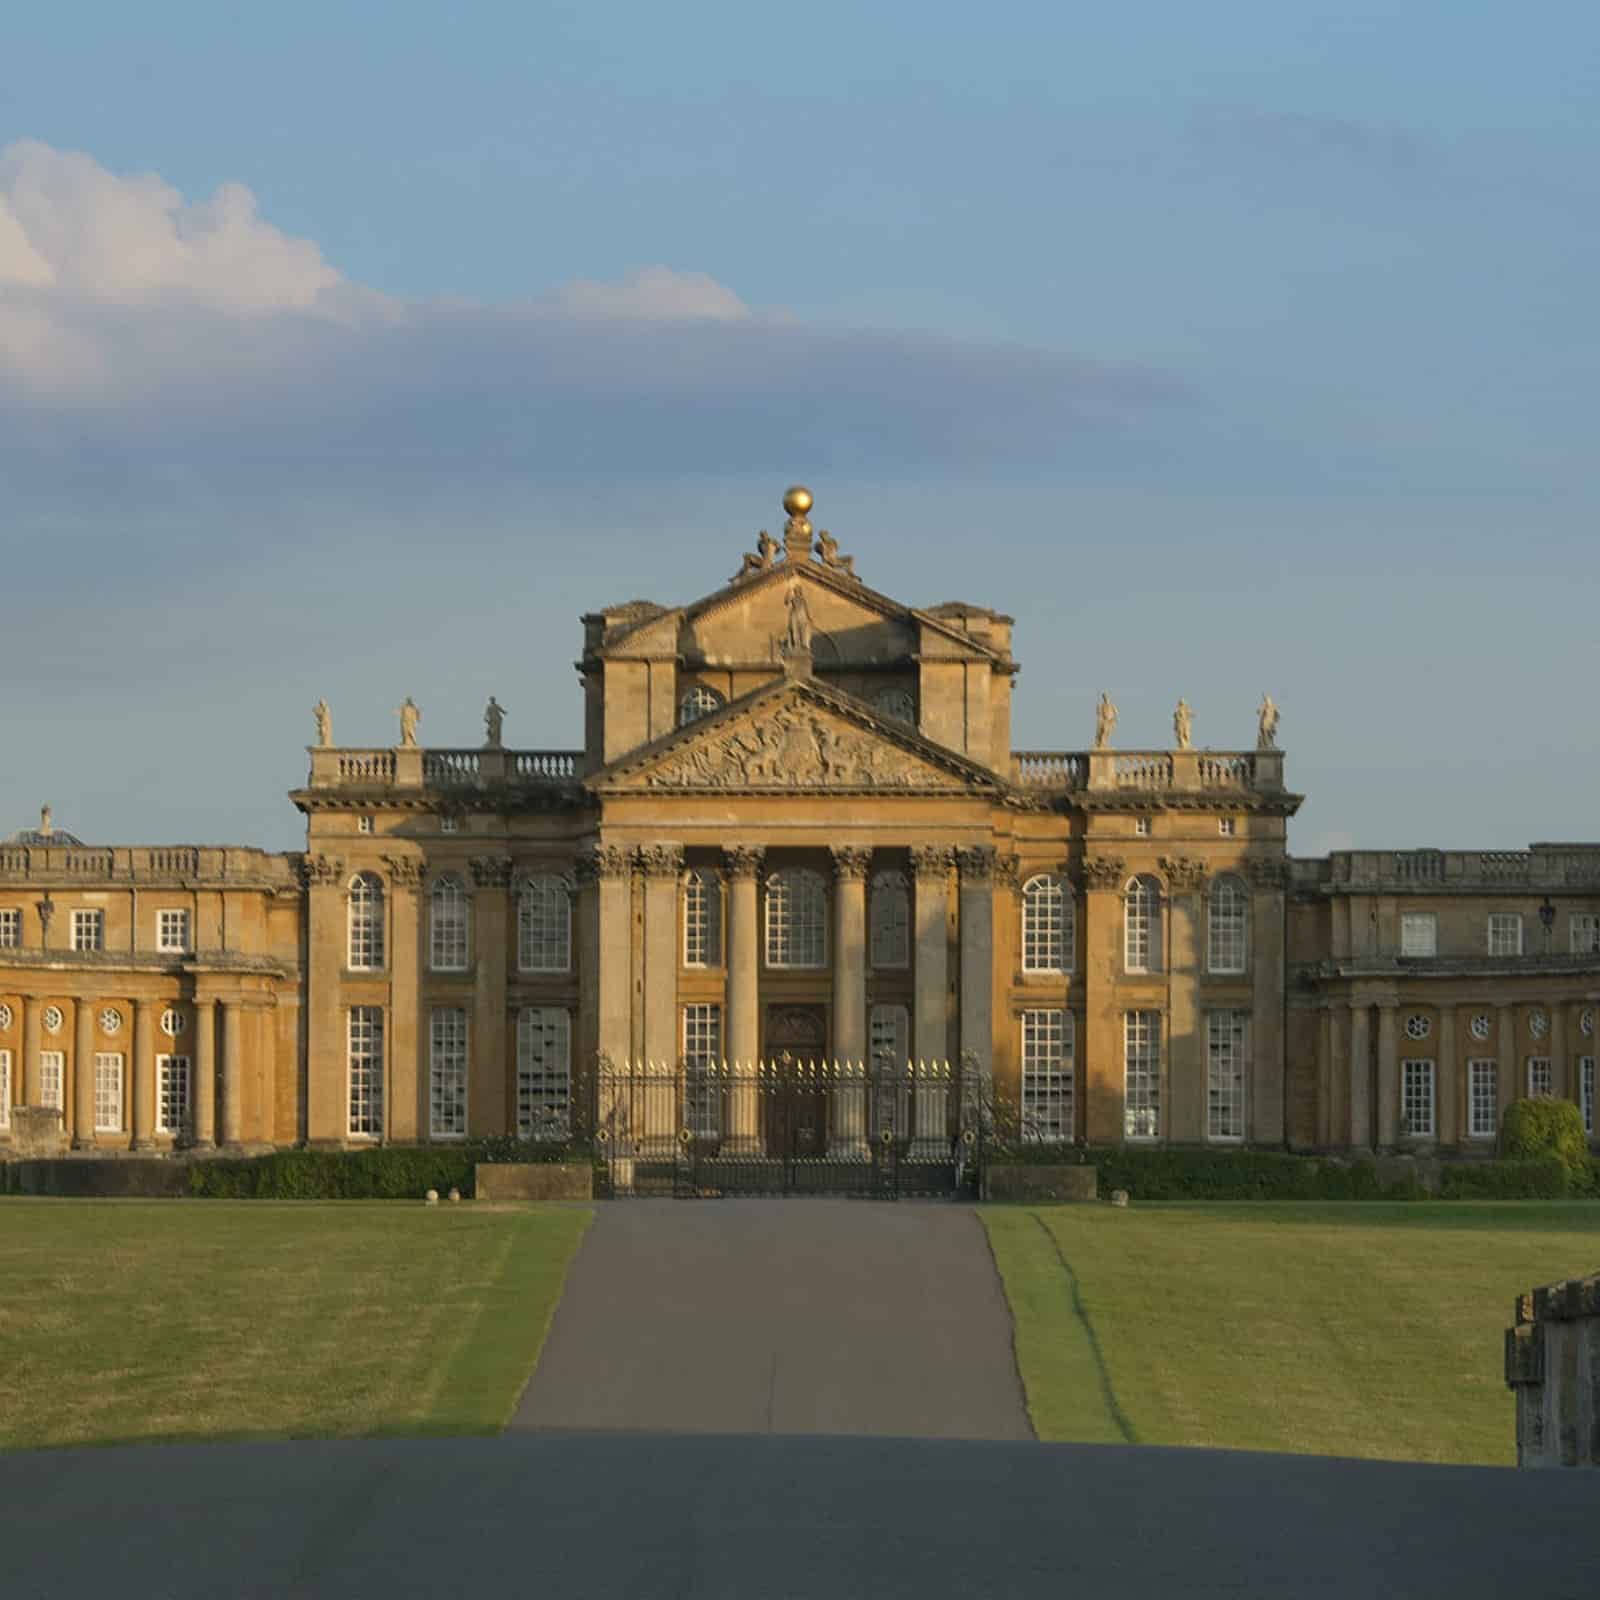 Blenheim Palace exterior on a sunny day.